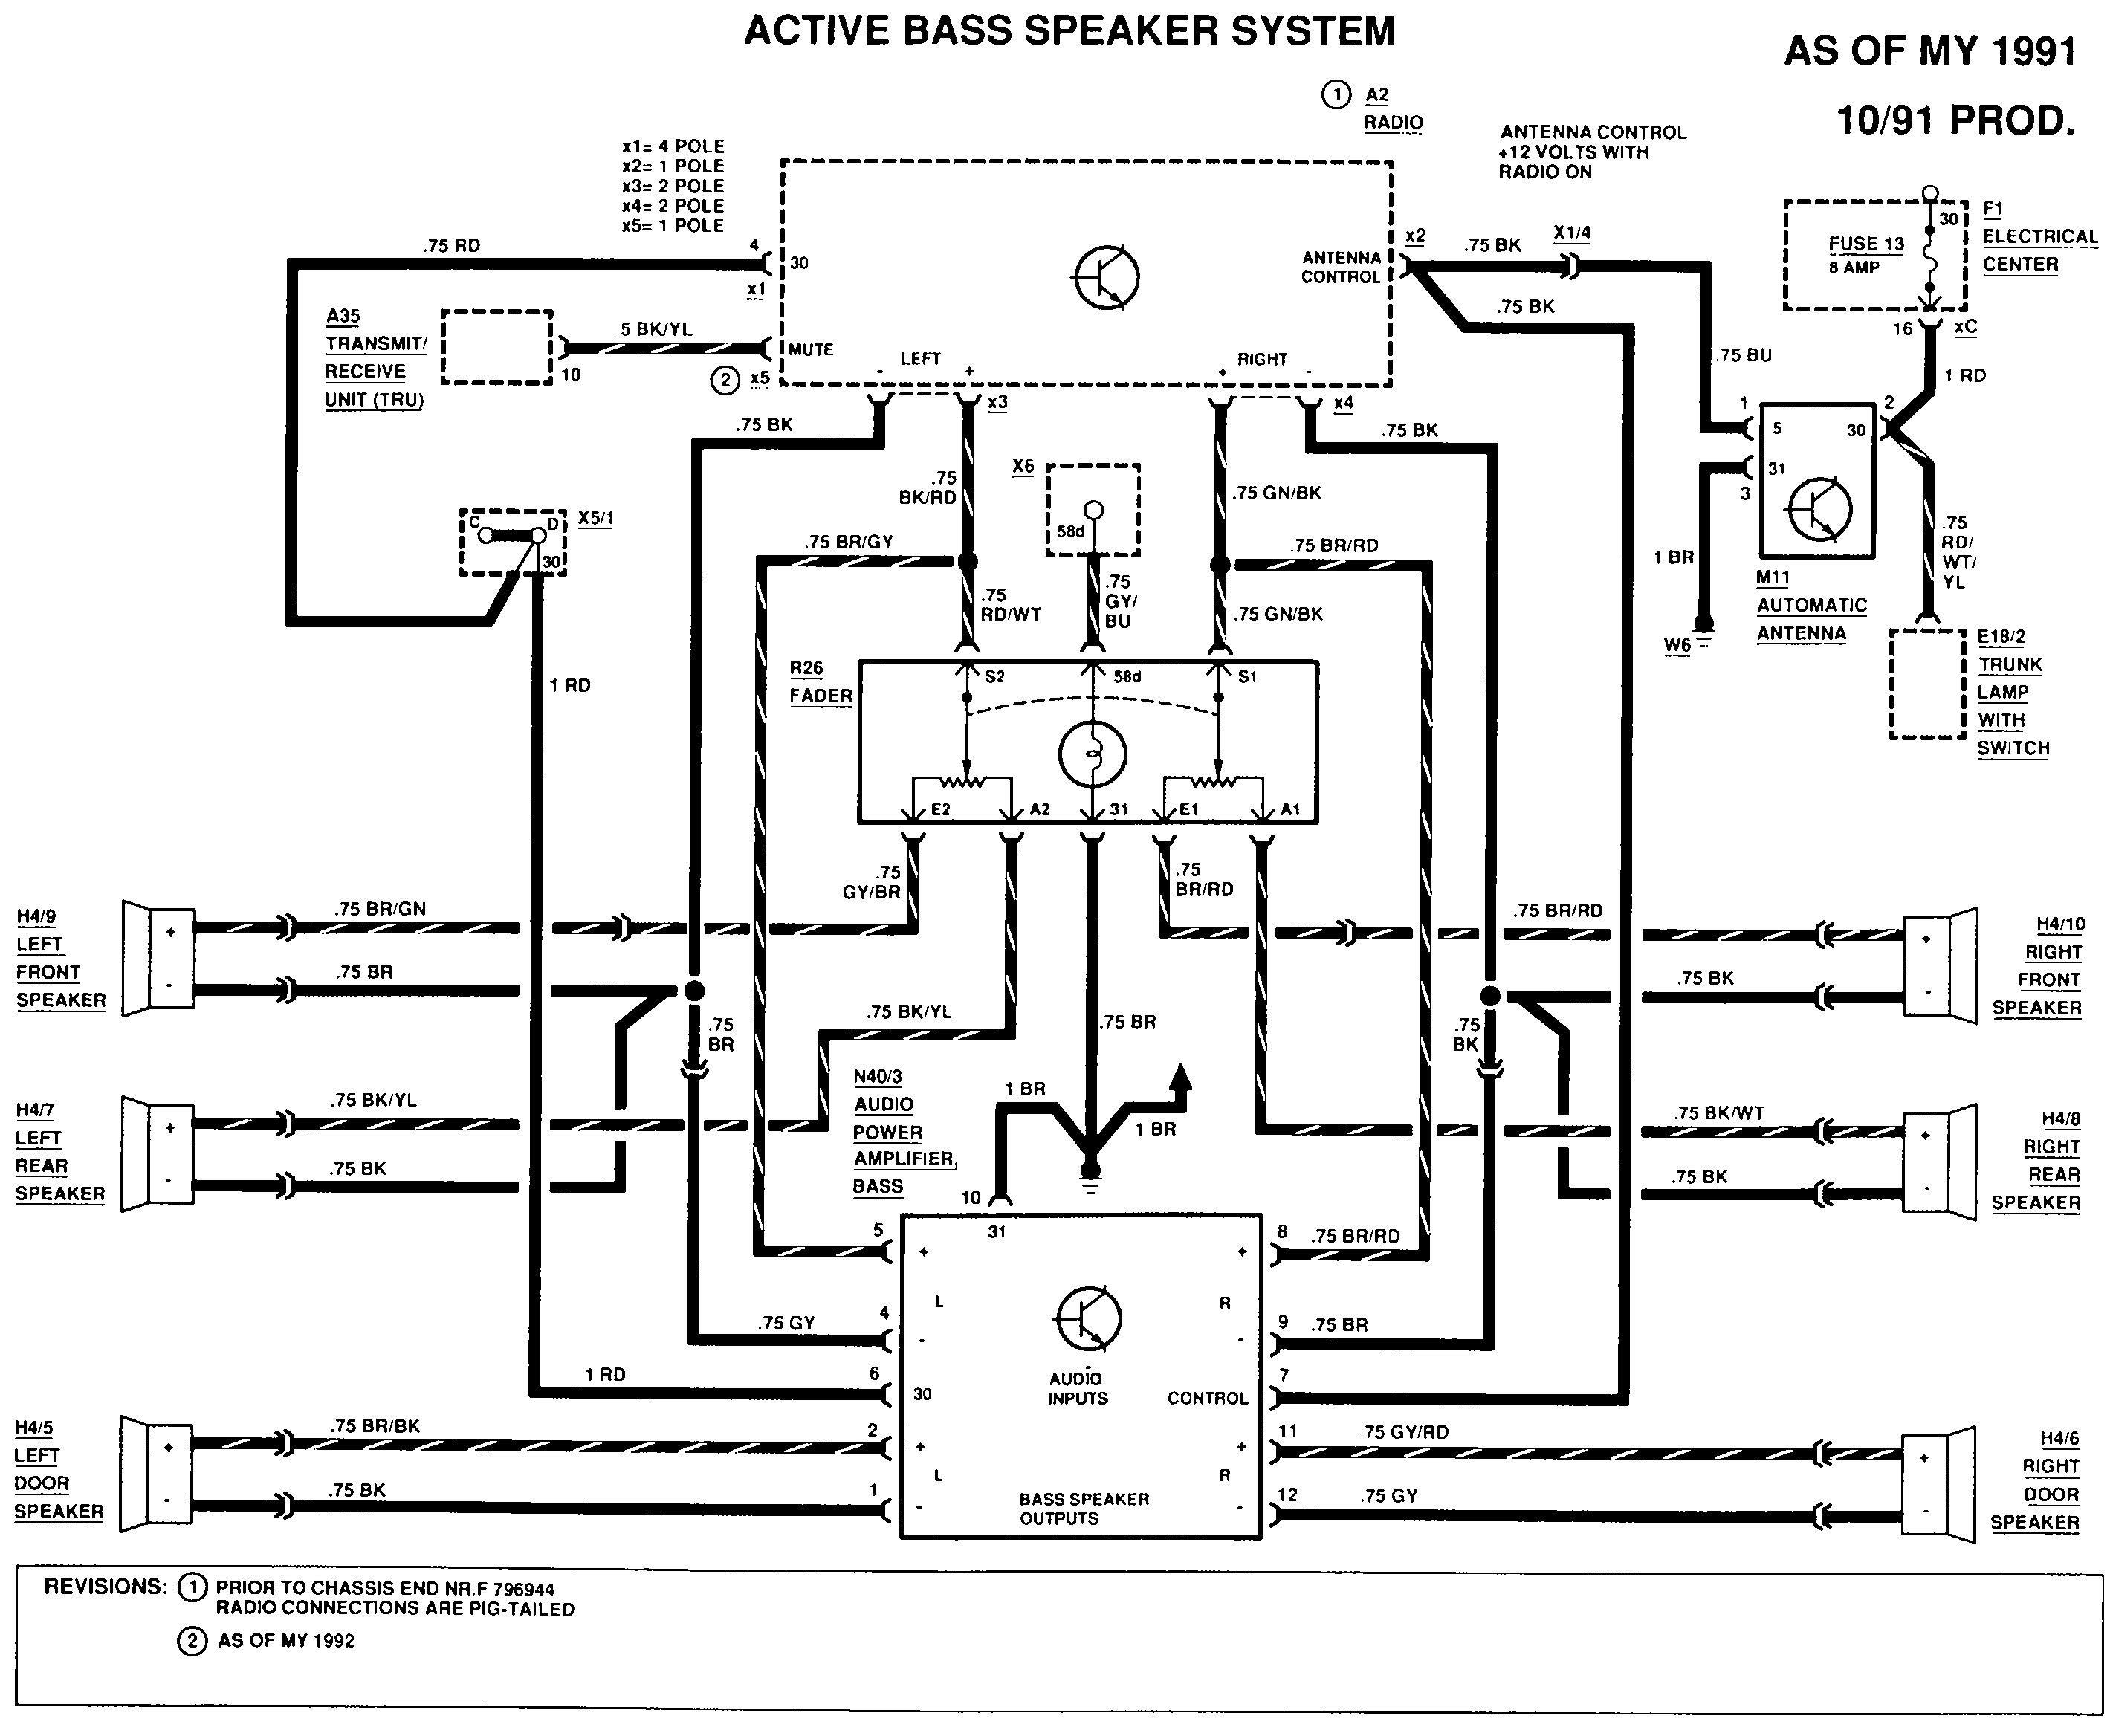 sprinter 3500 fan clutch wiring diagram trusted wiring diagram u2022 rh soulmatestyle co 2005 dodge sprinter radio wiring diagram